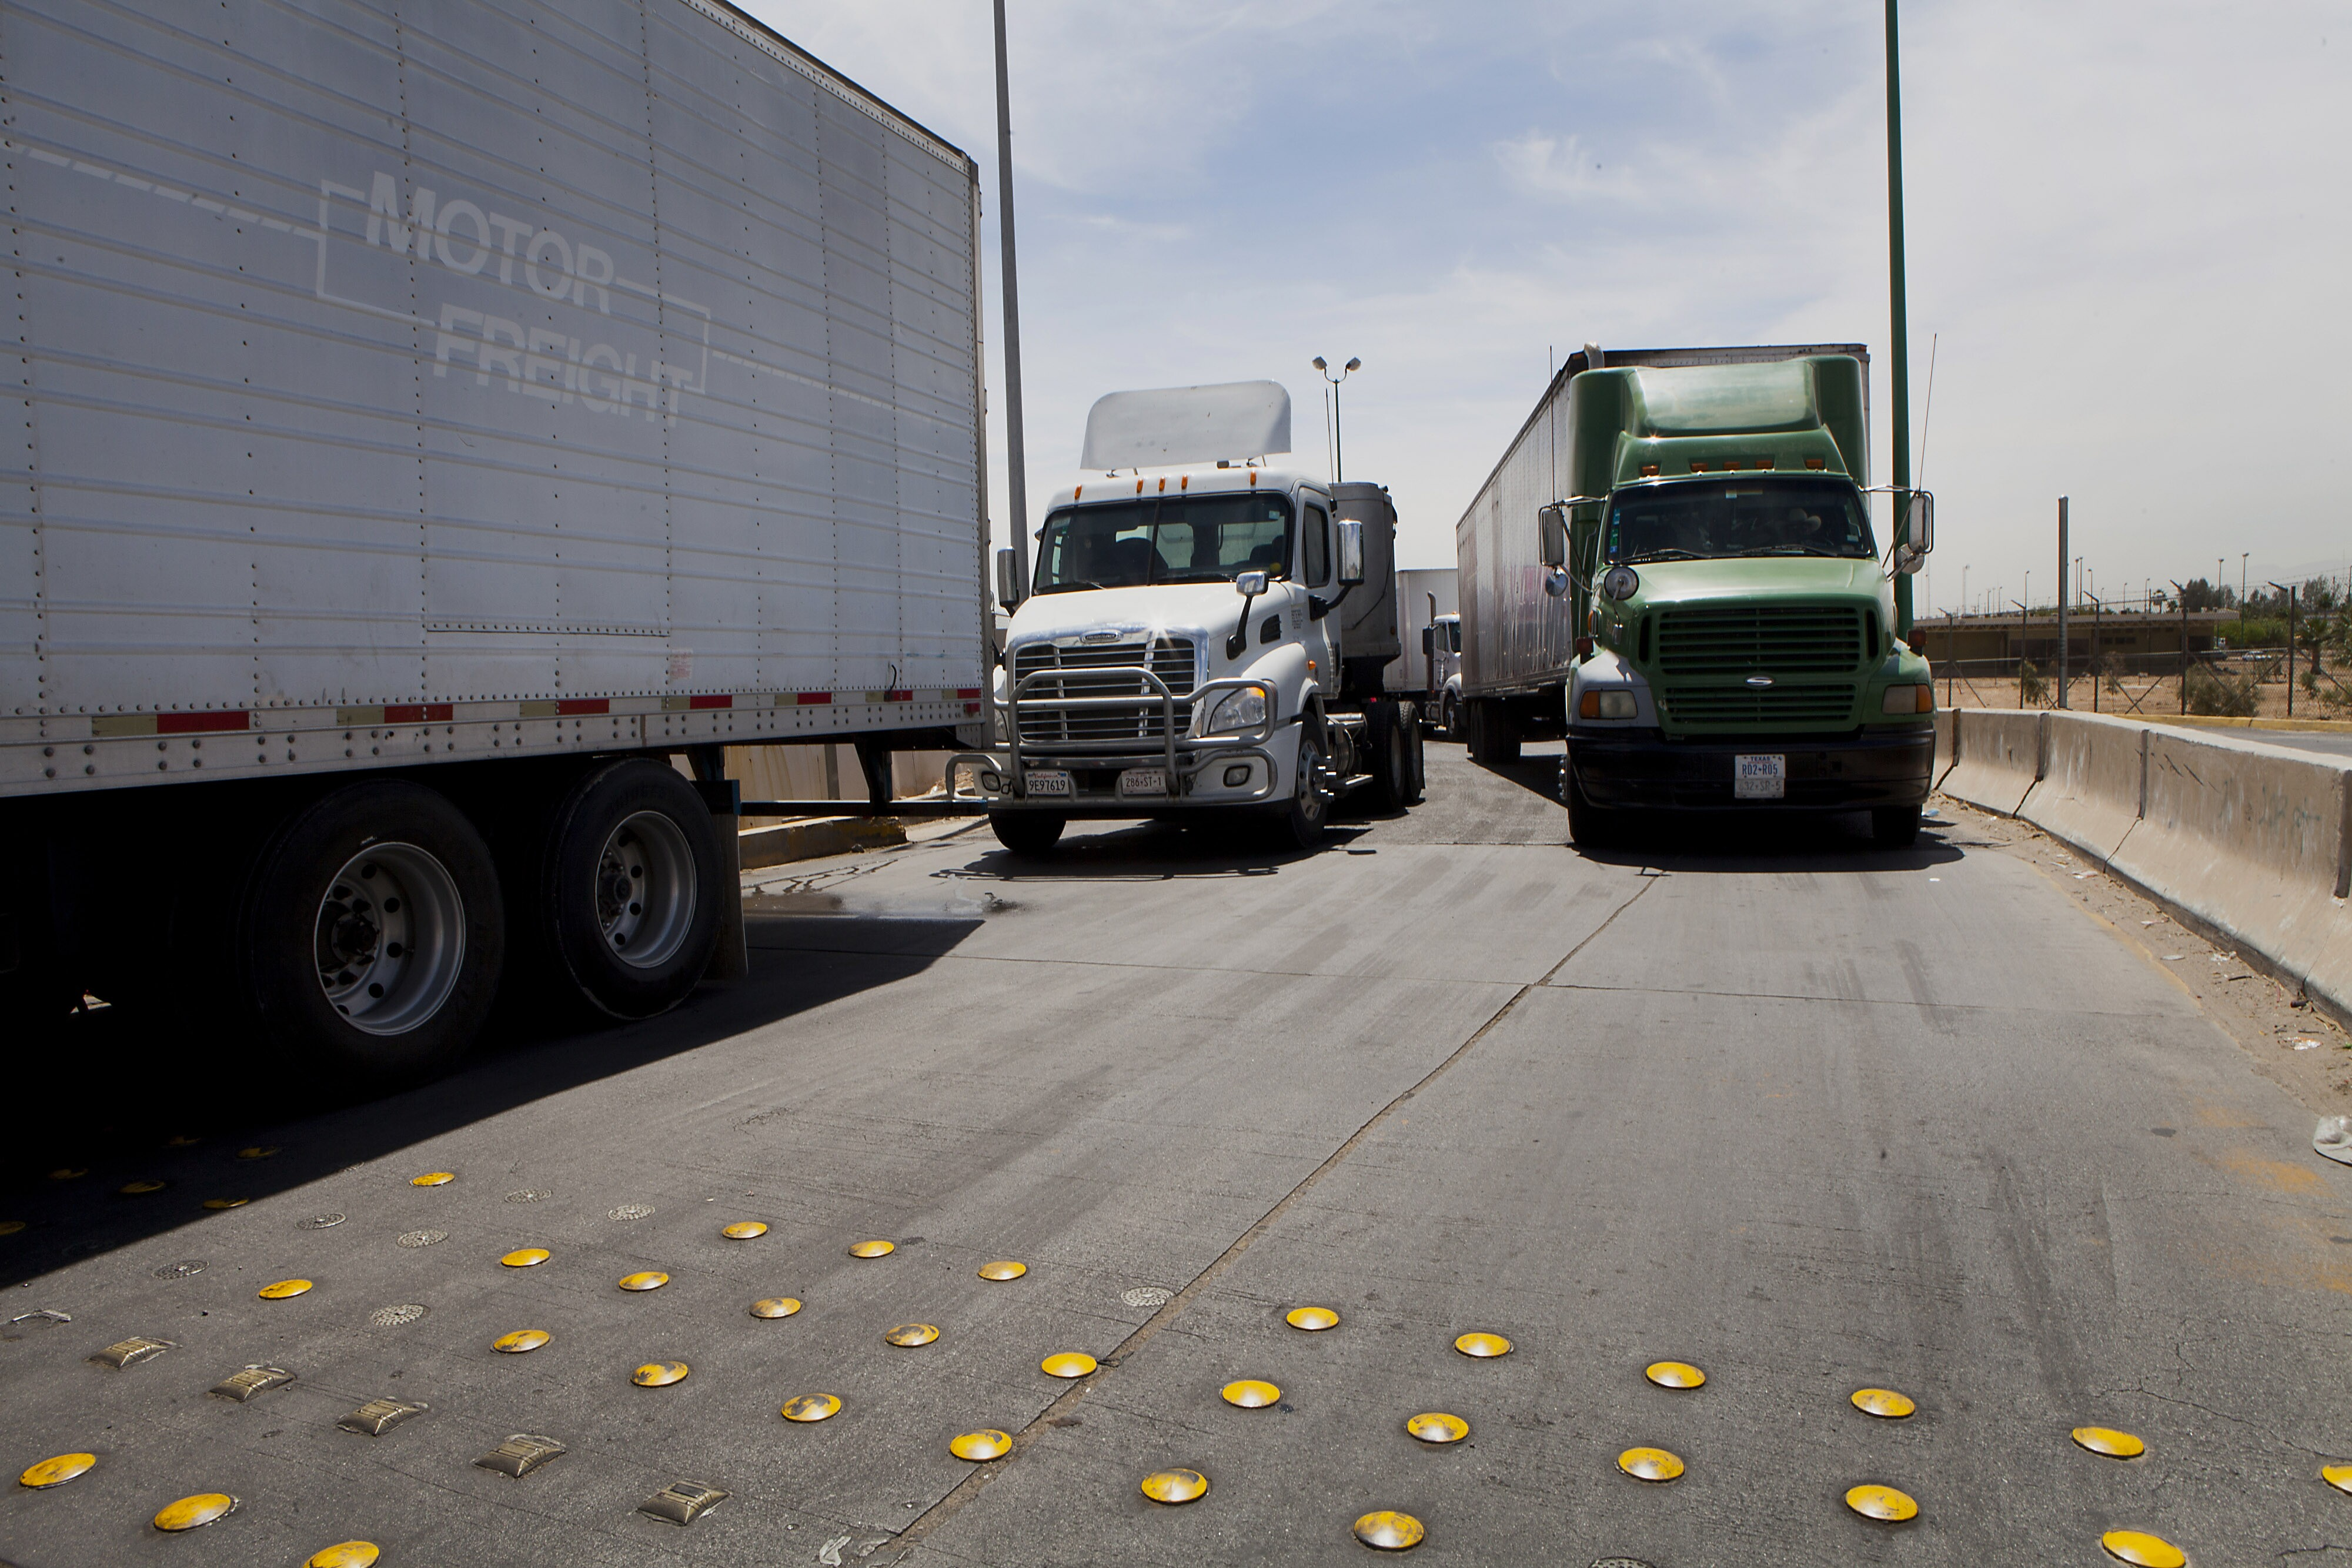 New Diesel Truck Filters Linked To Fires Explosions But Officials Freightliner Fuel Unbudged